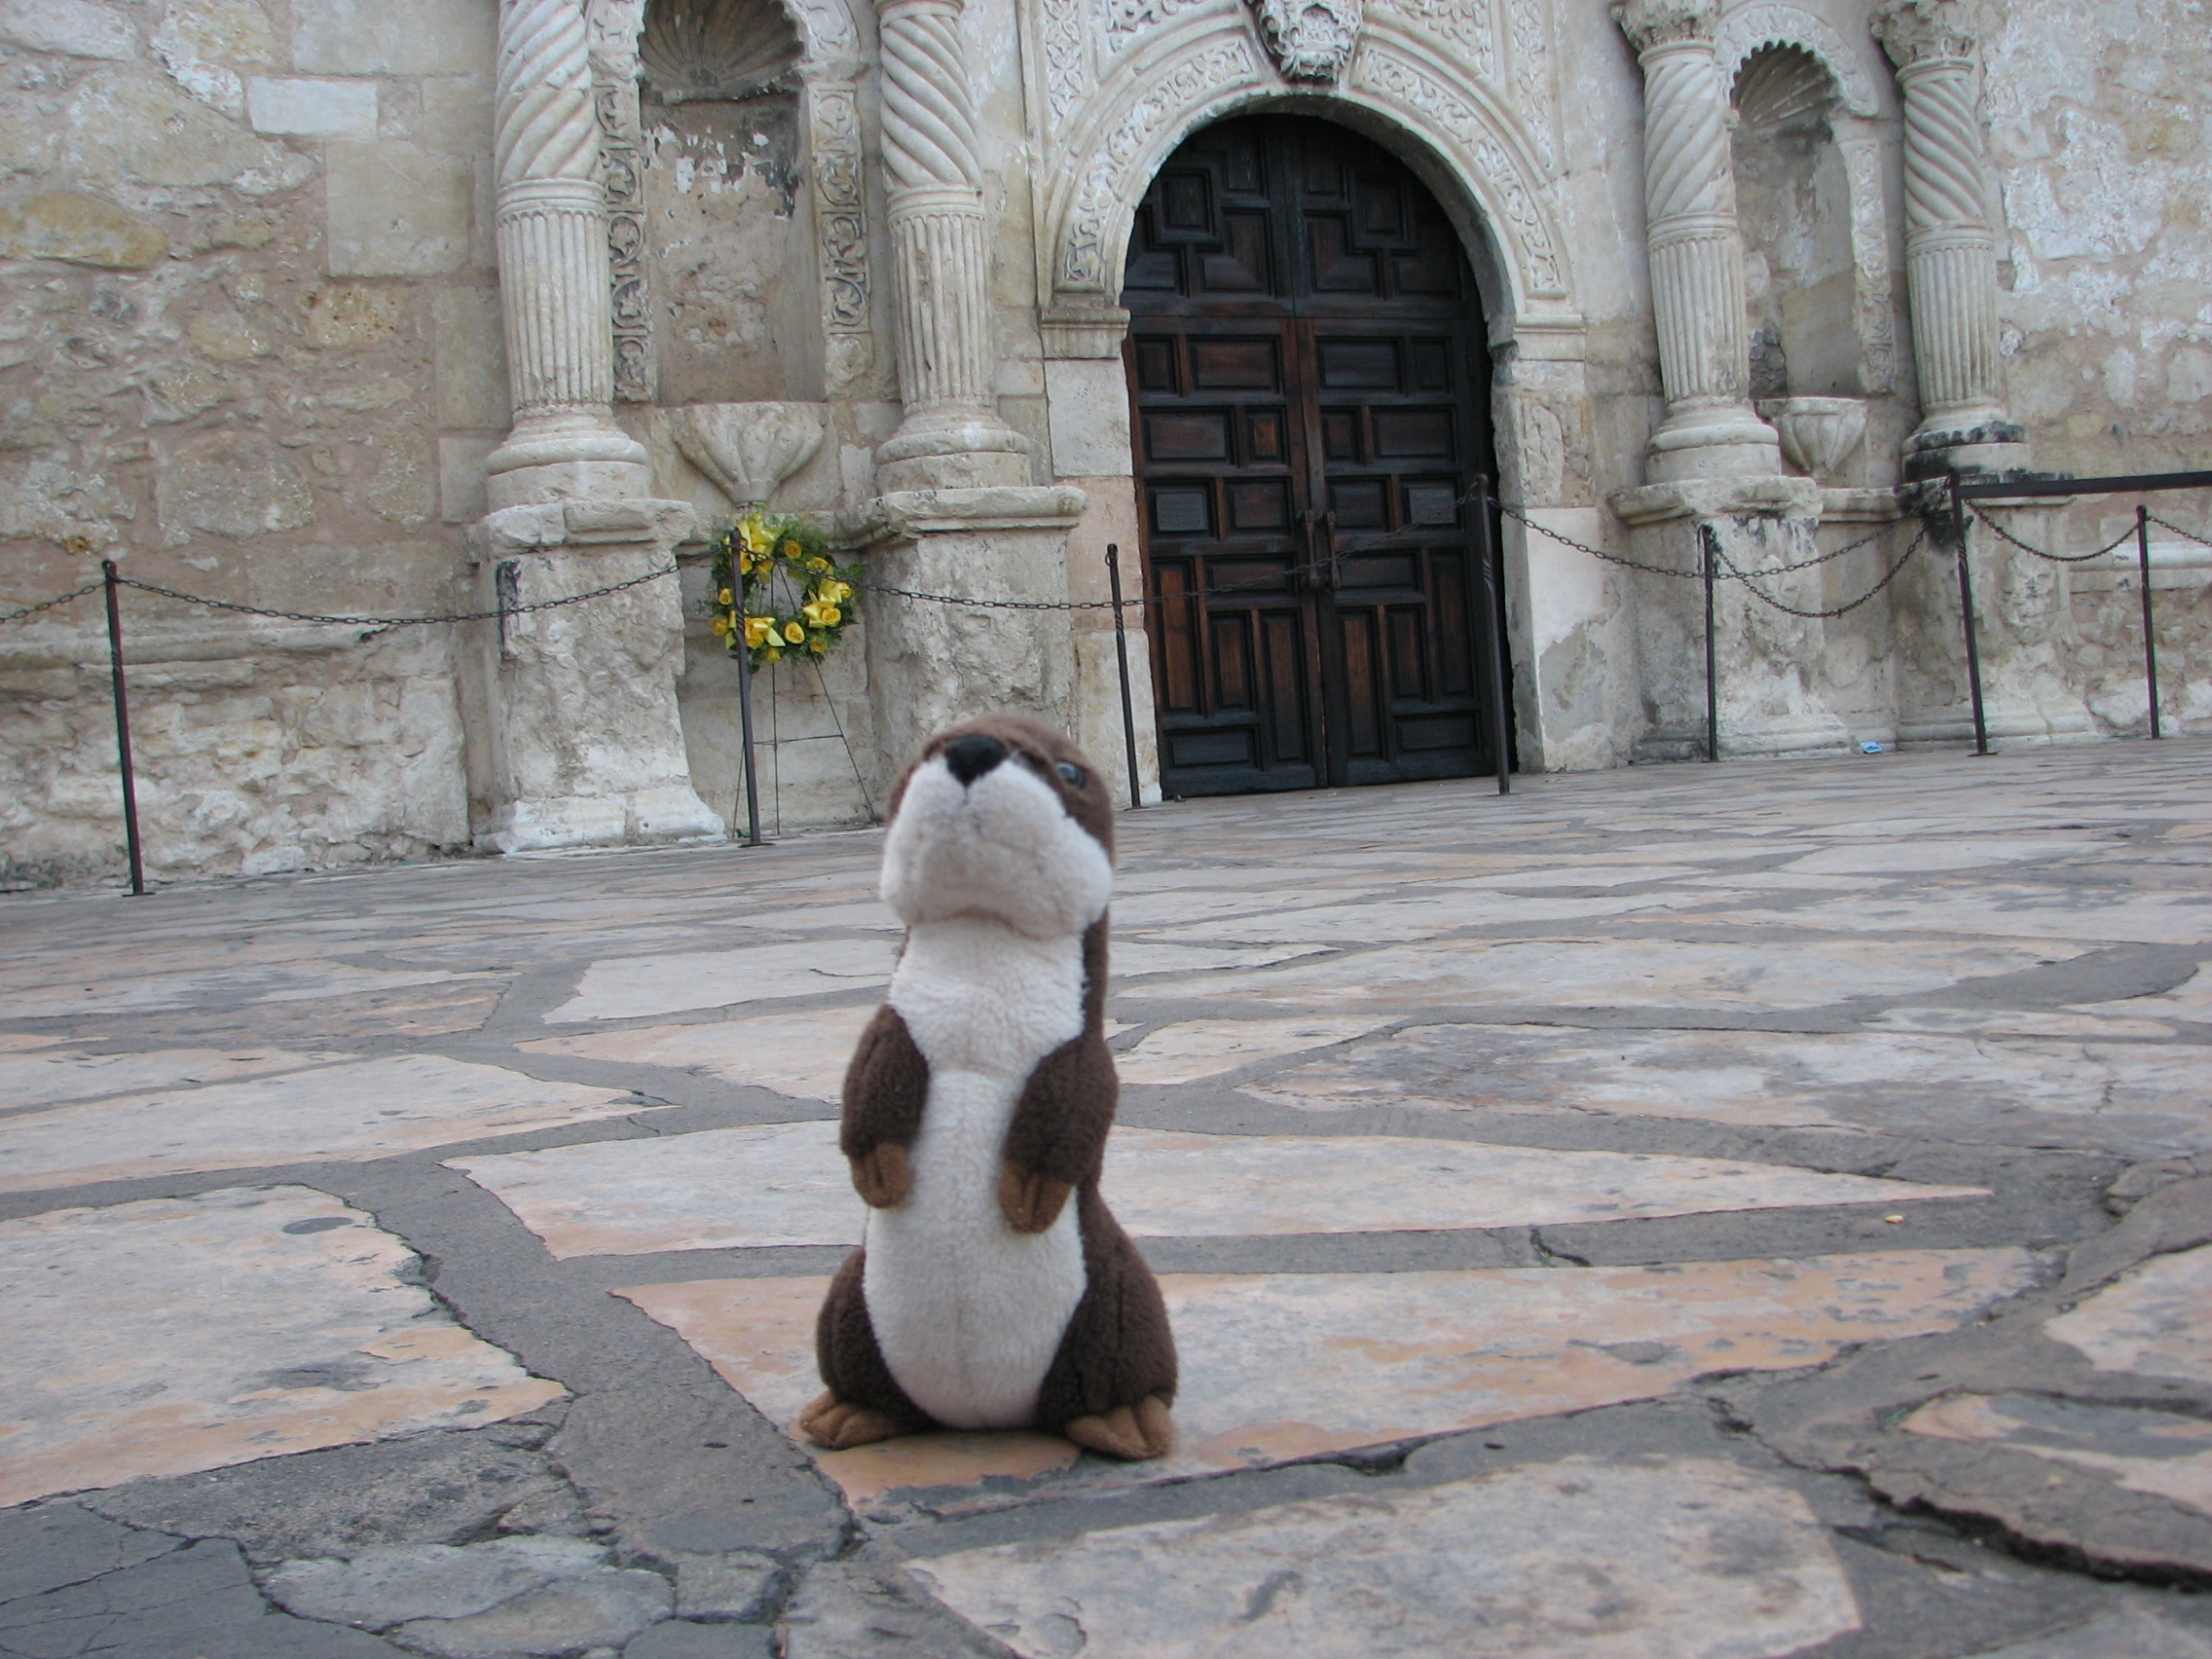 Otter at the Alamo